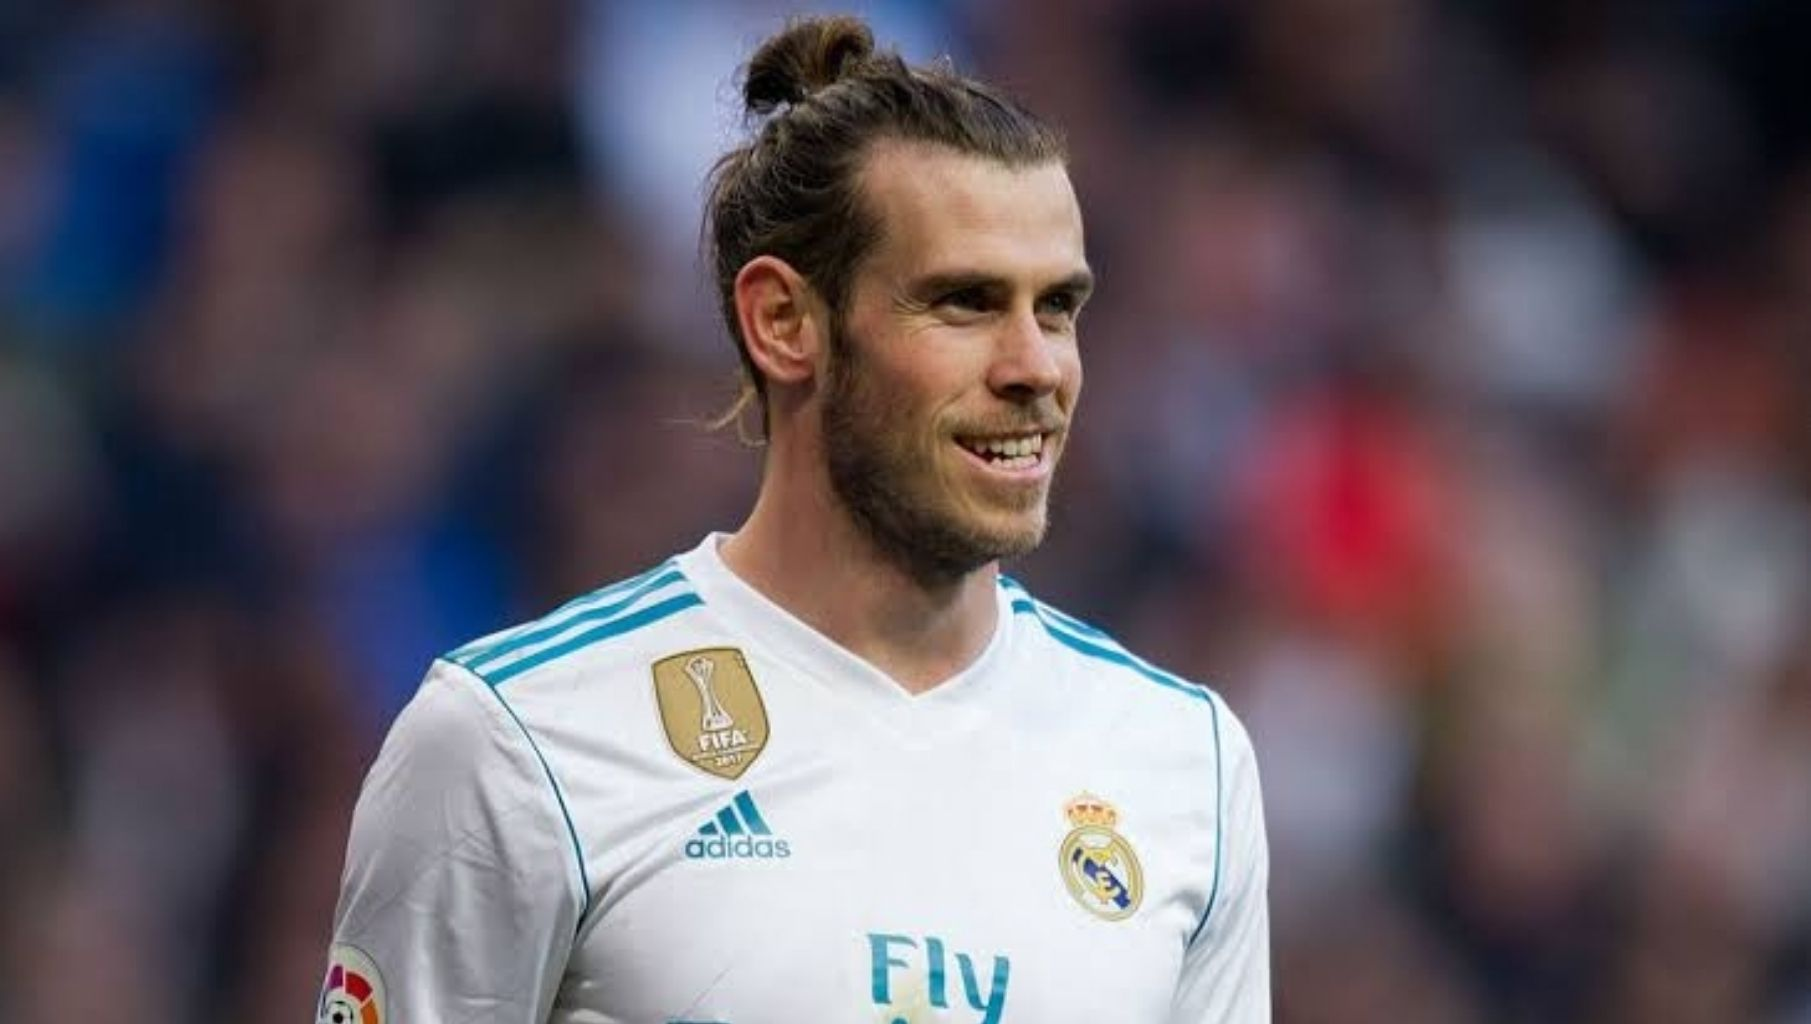 Transfer News And Rumours Bale Eye Man Utd Move With Images Gareth Bale Transfer News Ryan Giggs